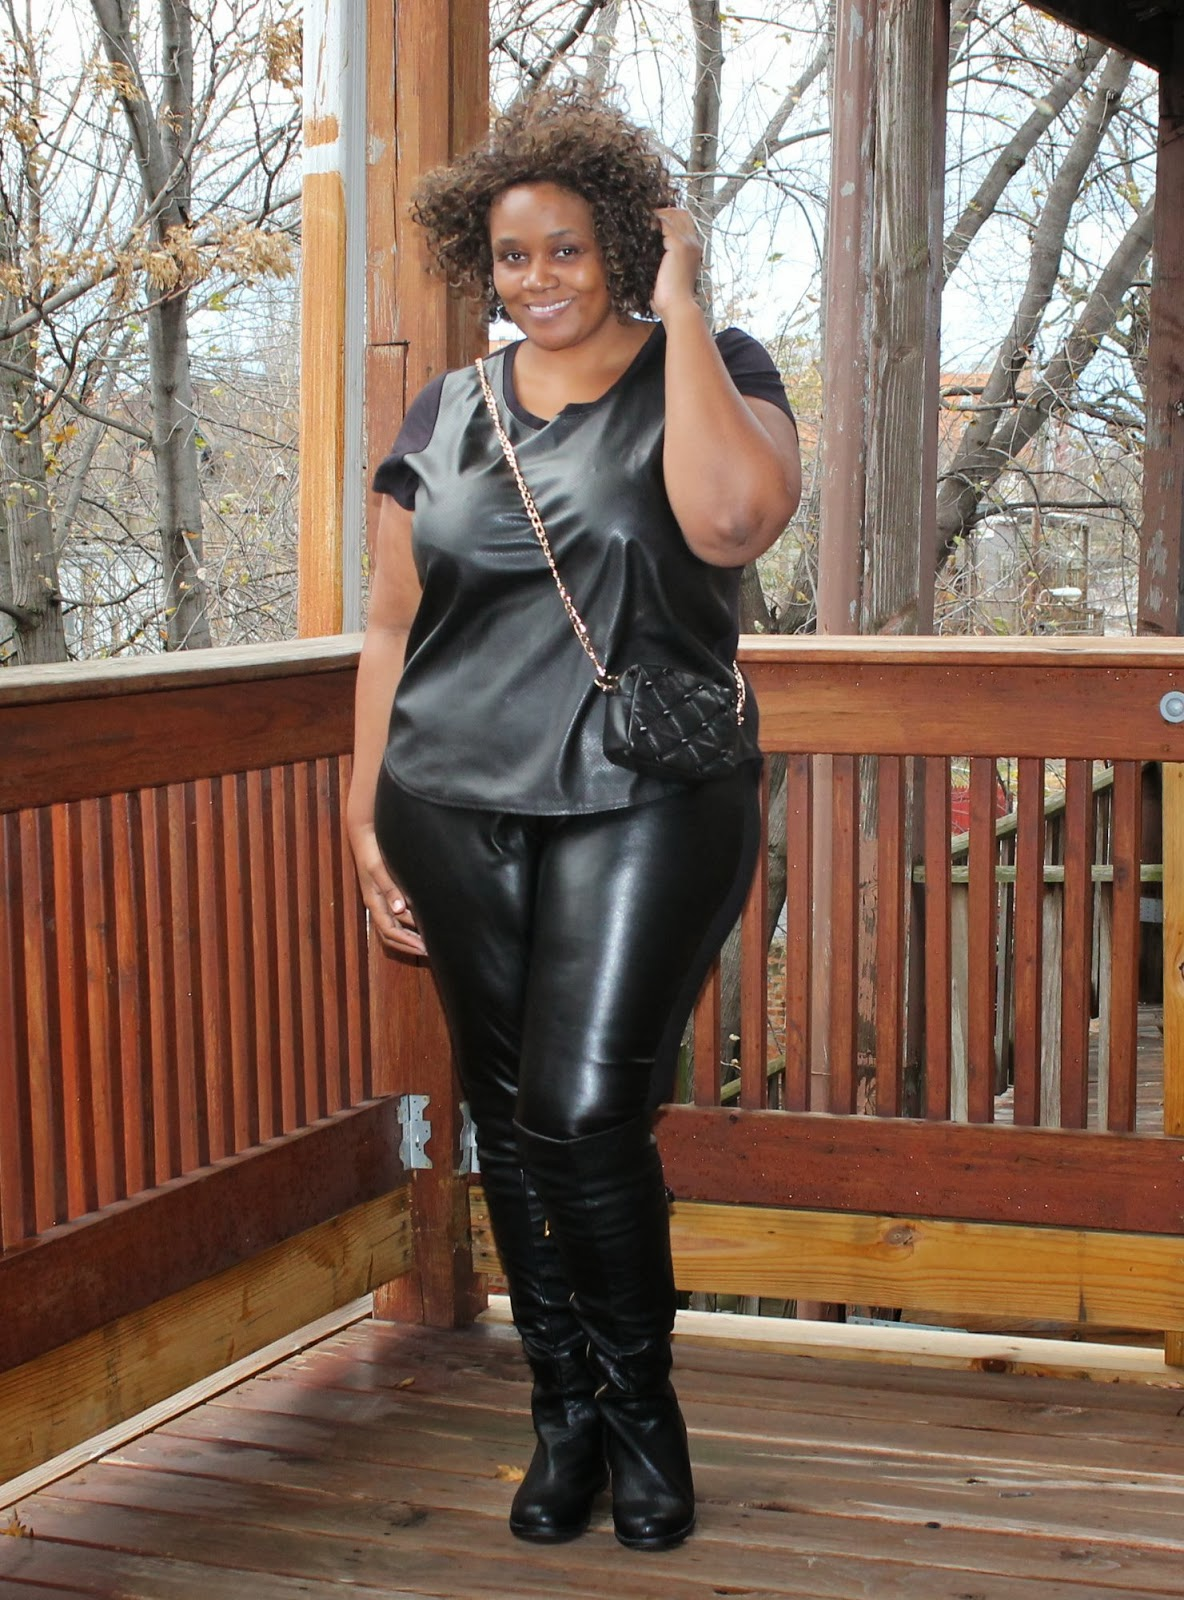 e6b6ef339cd6c Rock  n All Black (Leather) Everything + Over the Knee Boots • Curvatude